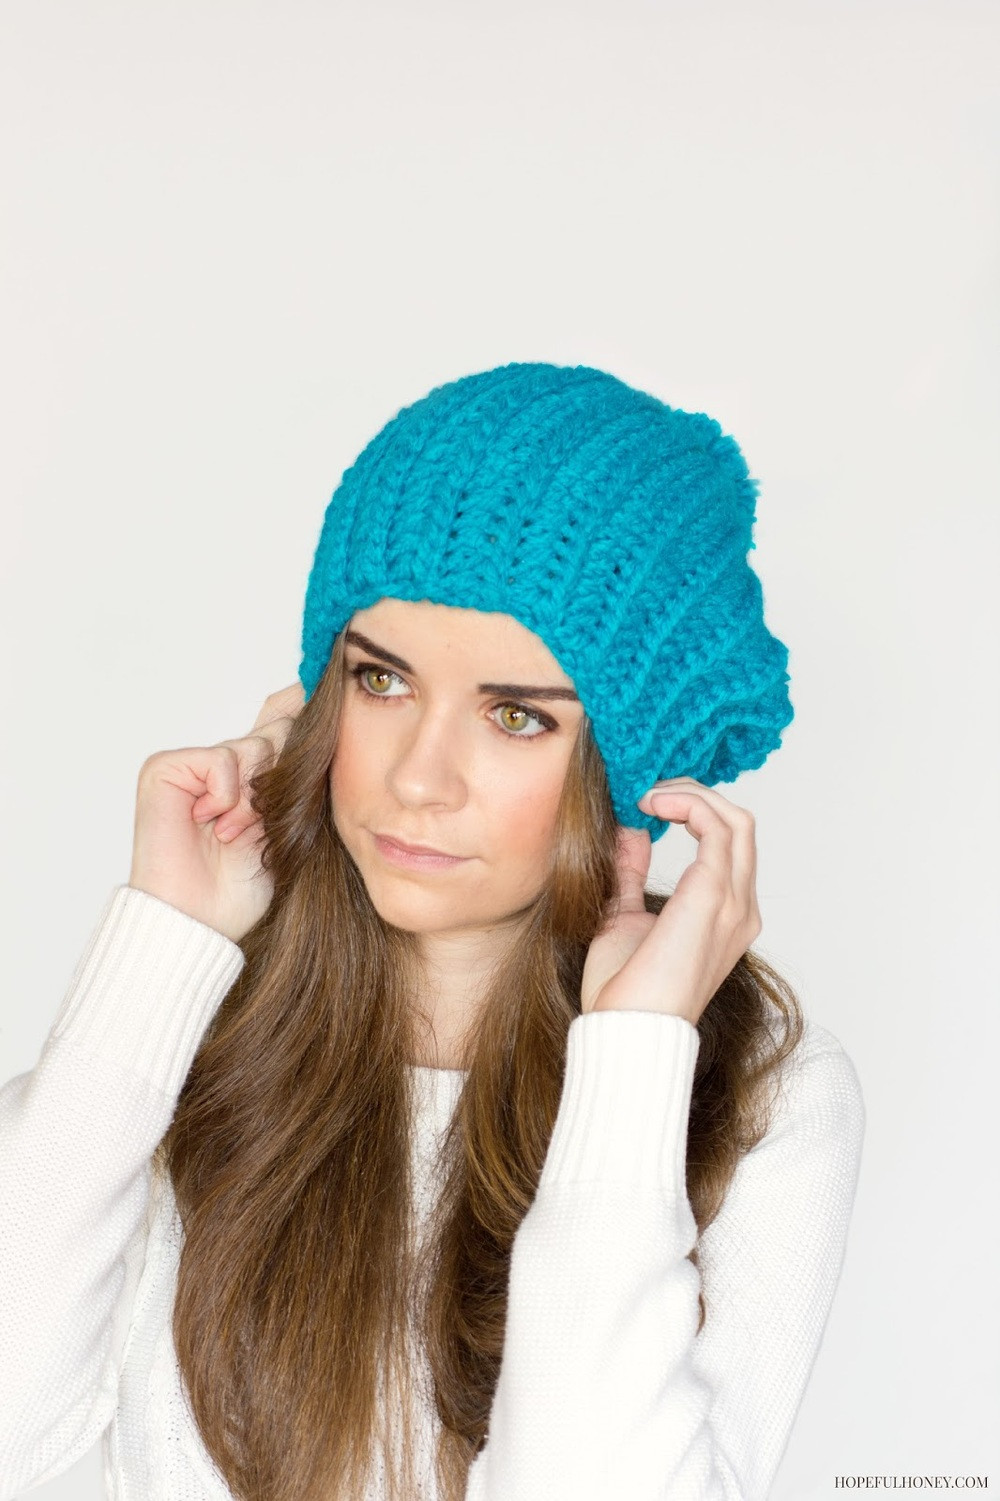 Crochet Beanie Pattern New Blue Beret Crochet Beanie Pattern Of Luxury 43 Pics Crochet Beanie Pattern